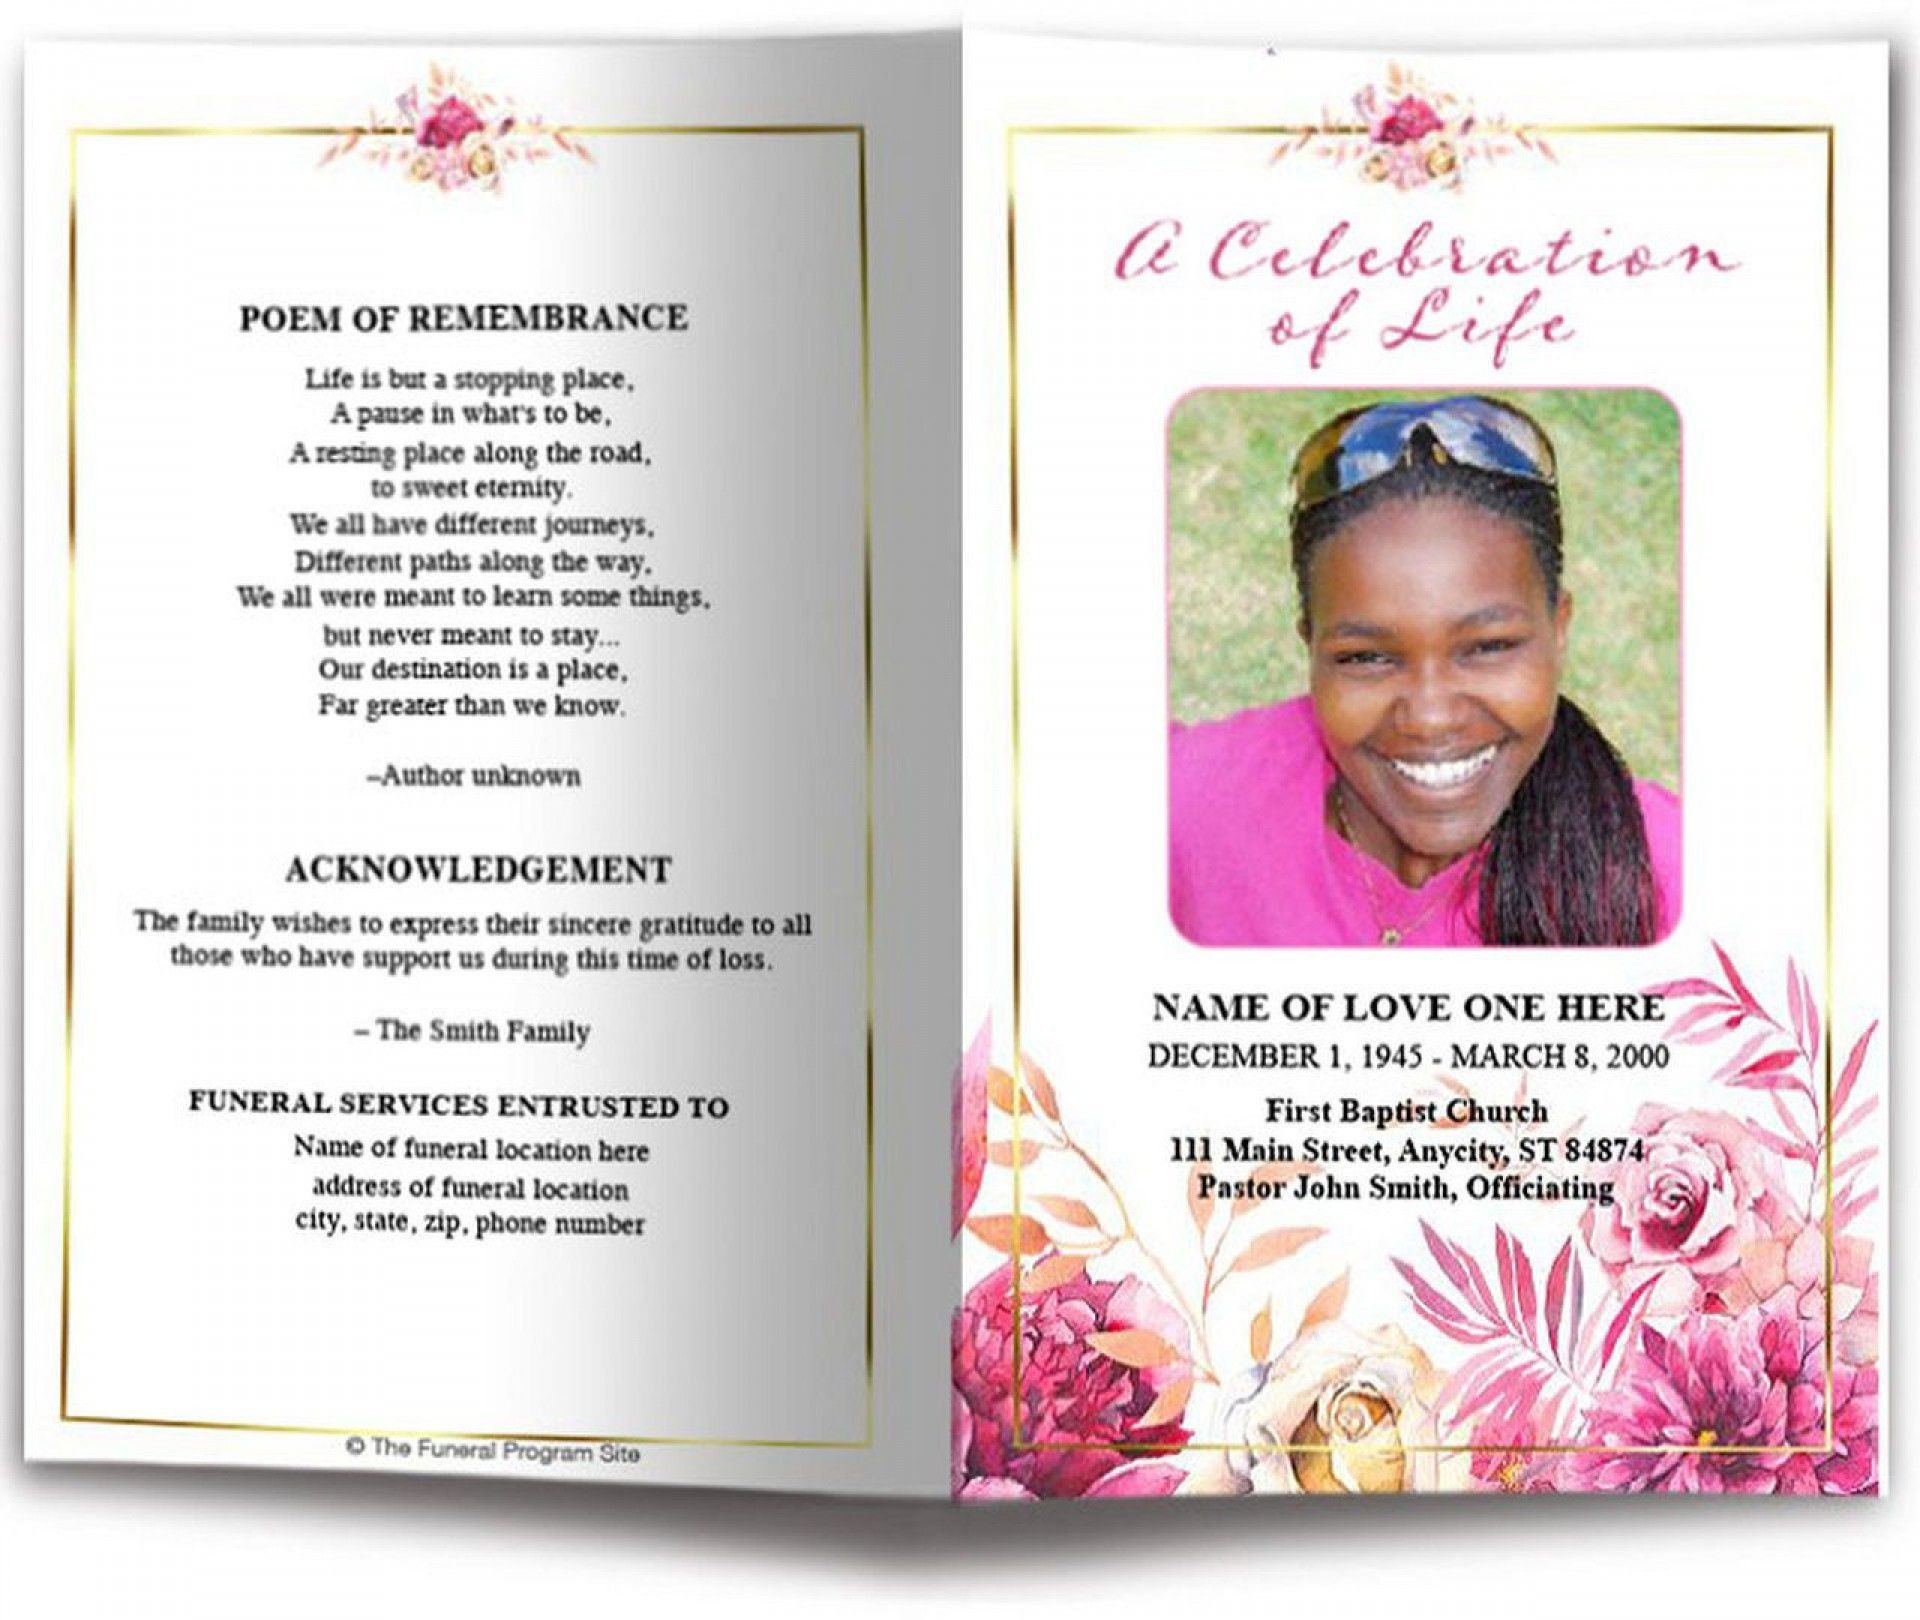 000 Archaicawful Template For Funeral Program Free Photo  Printable Download On Word Editable Pdf1920